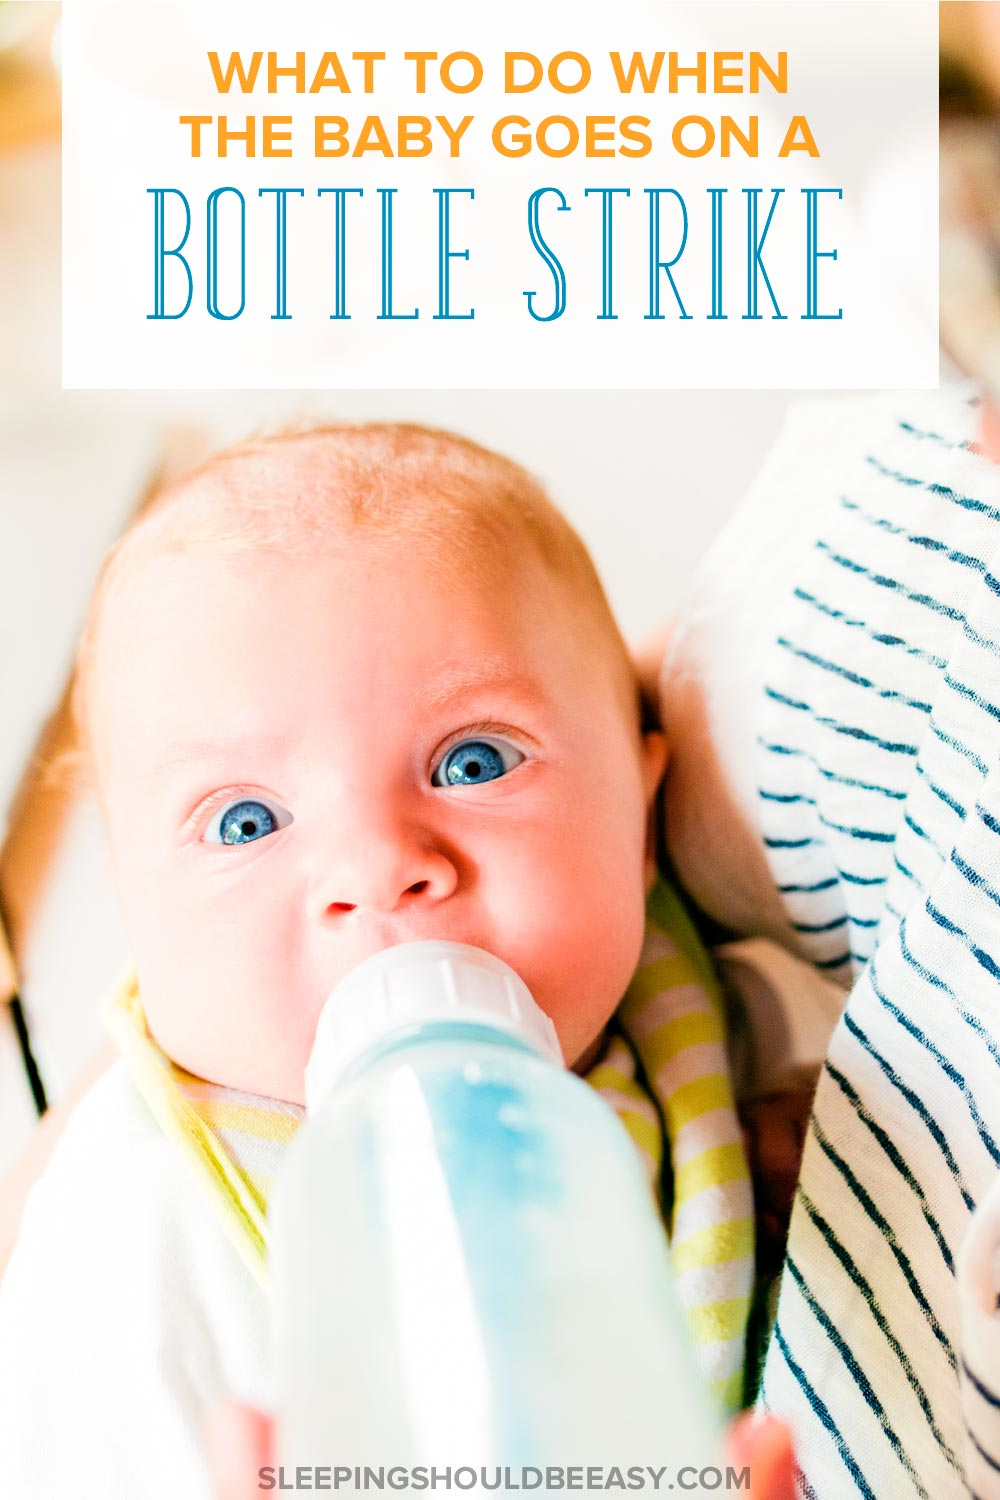 Your baby, who had always taken to bottles, is now going on a bottle strike. Here's what to do if your baby suddenly refuses to drink from a bottle.